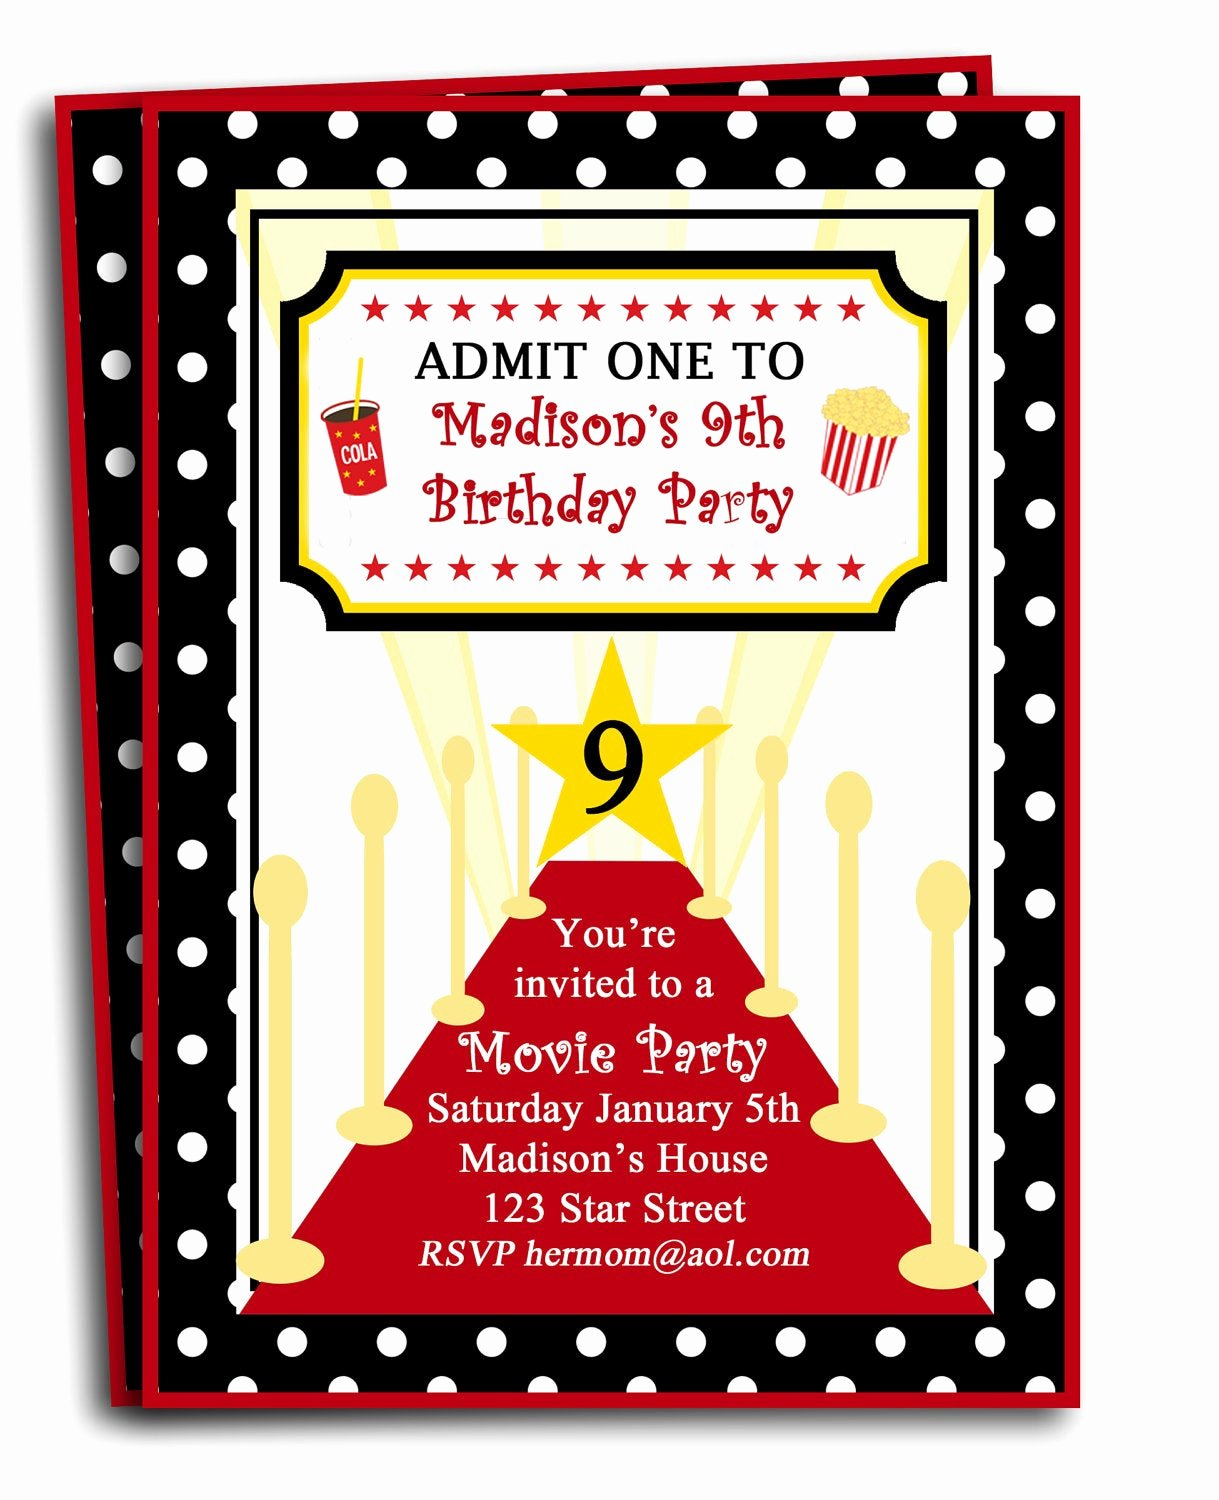 Red Carpet Invitation Template Free Fresh Red Carpet Party Invitation Printable or Printed with Free